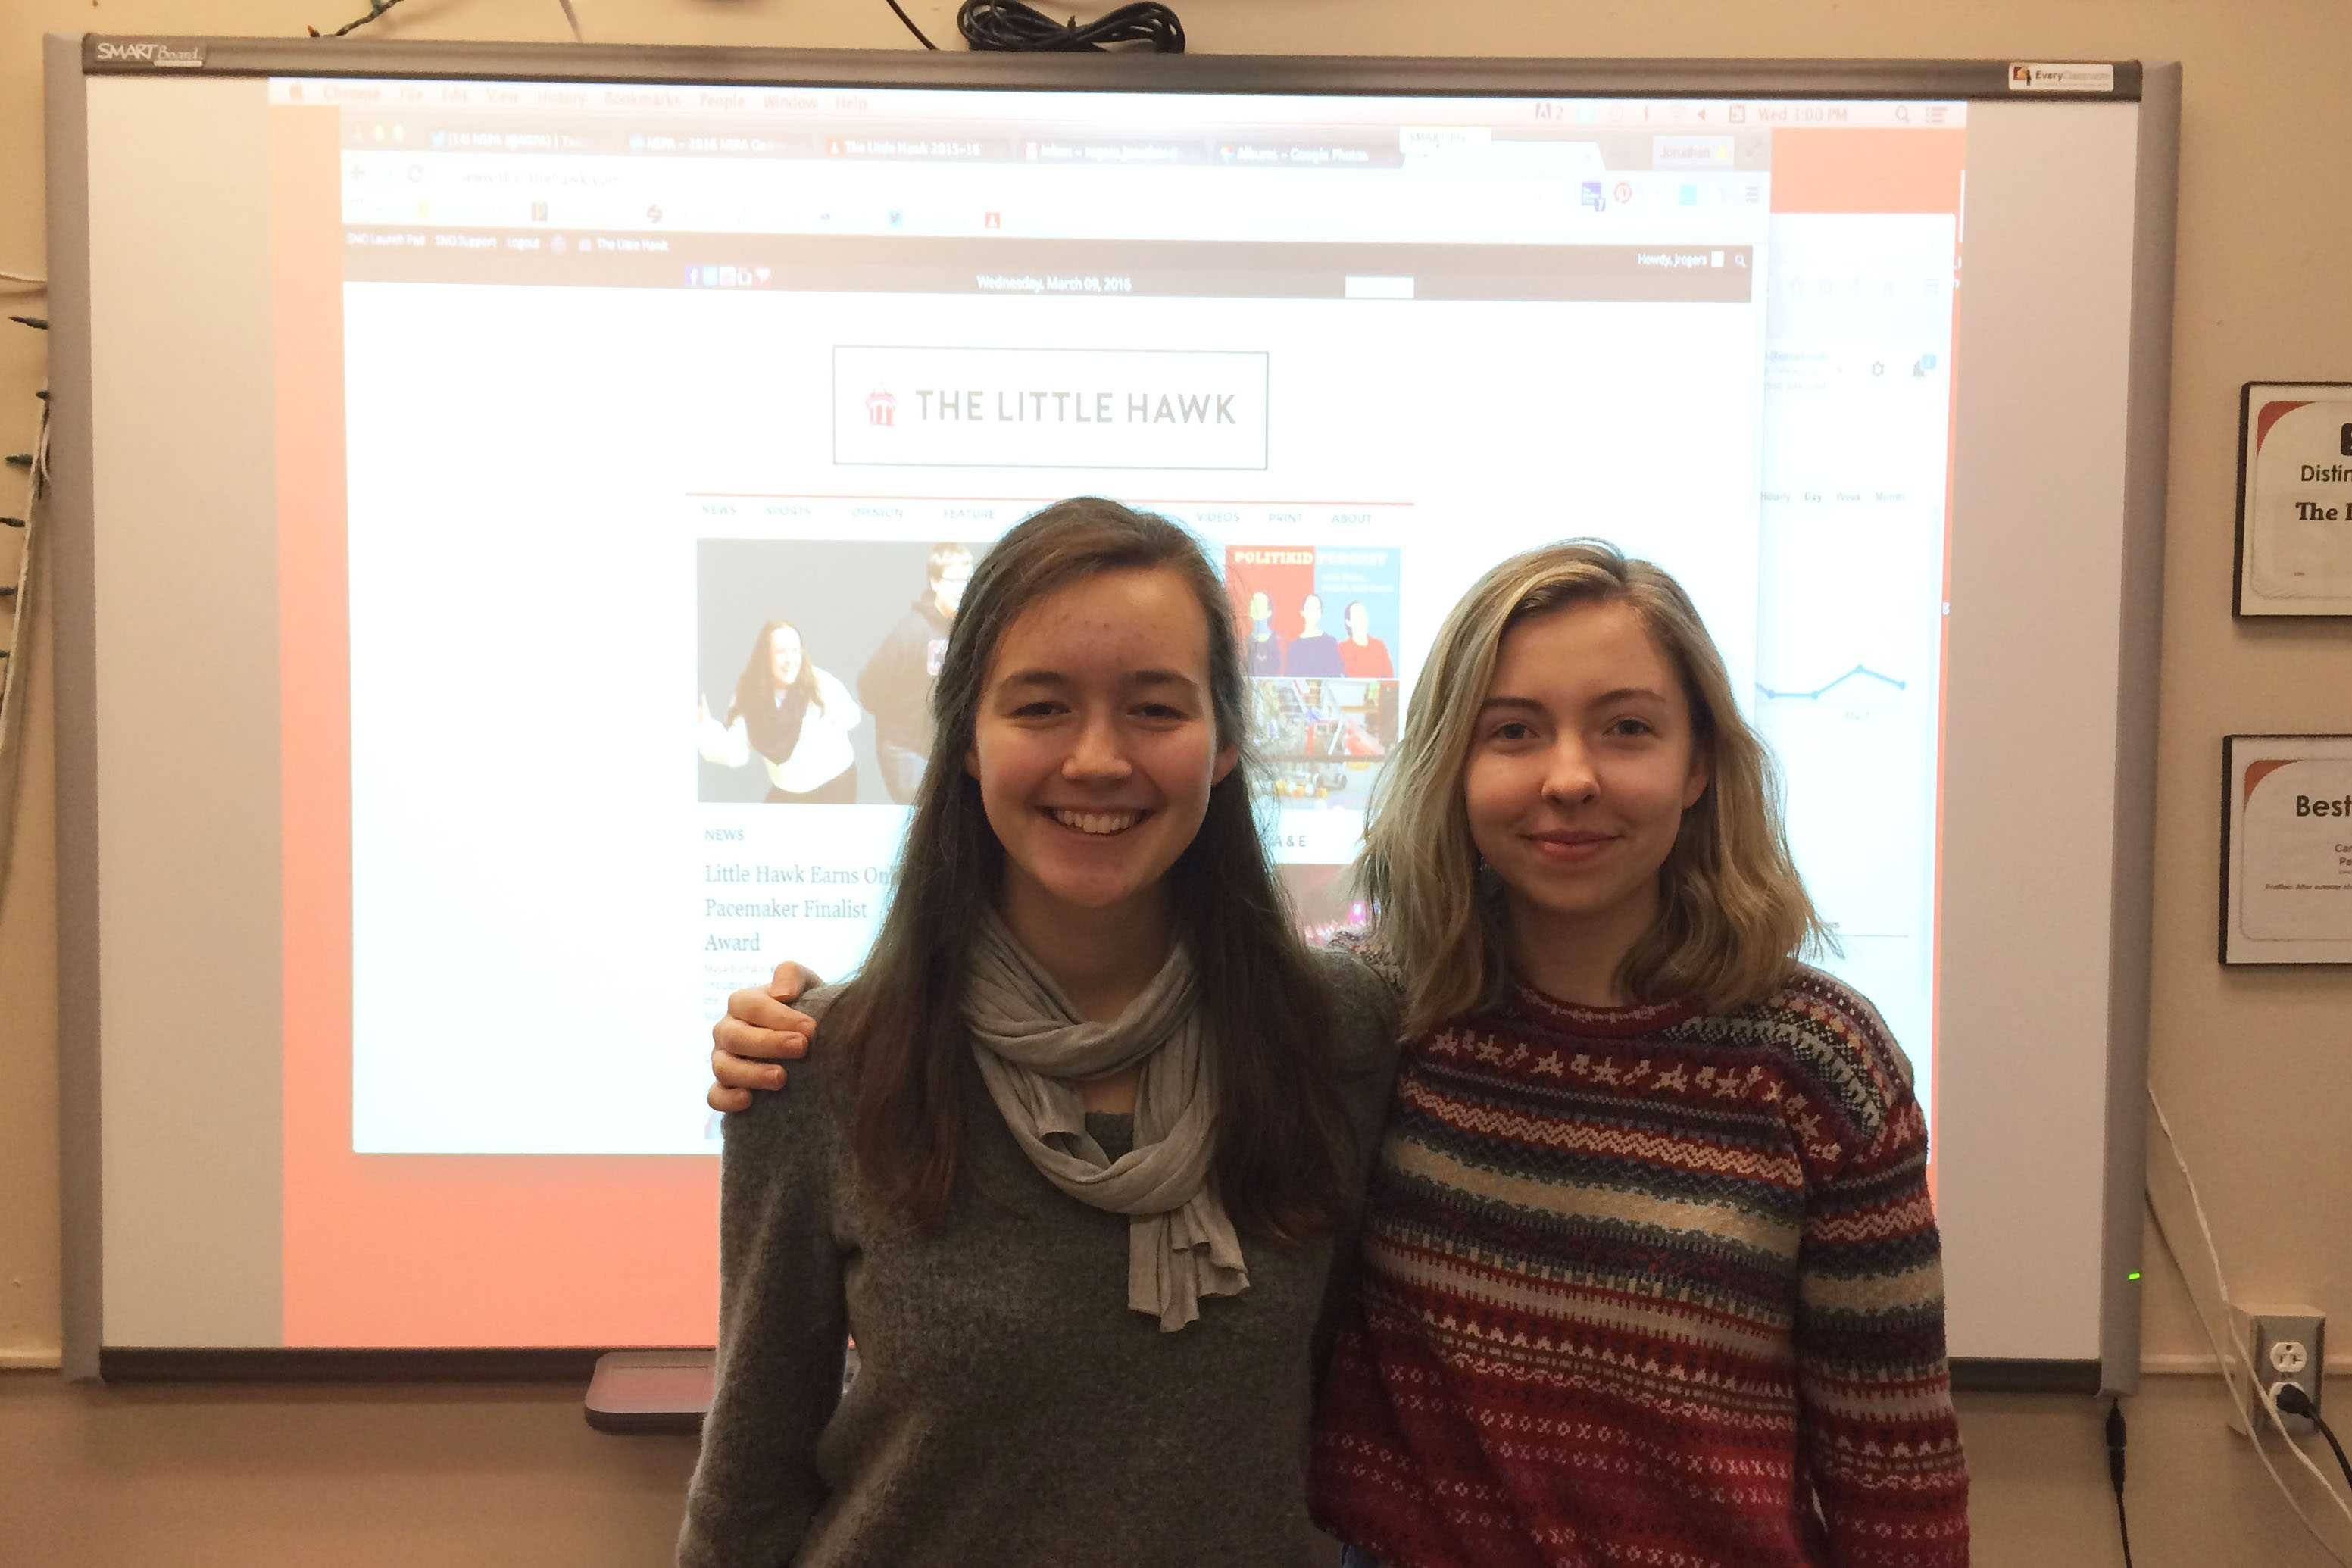 Nova Meurice and Sarah Smith, web editors 2015-2016